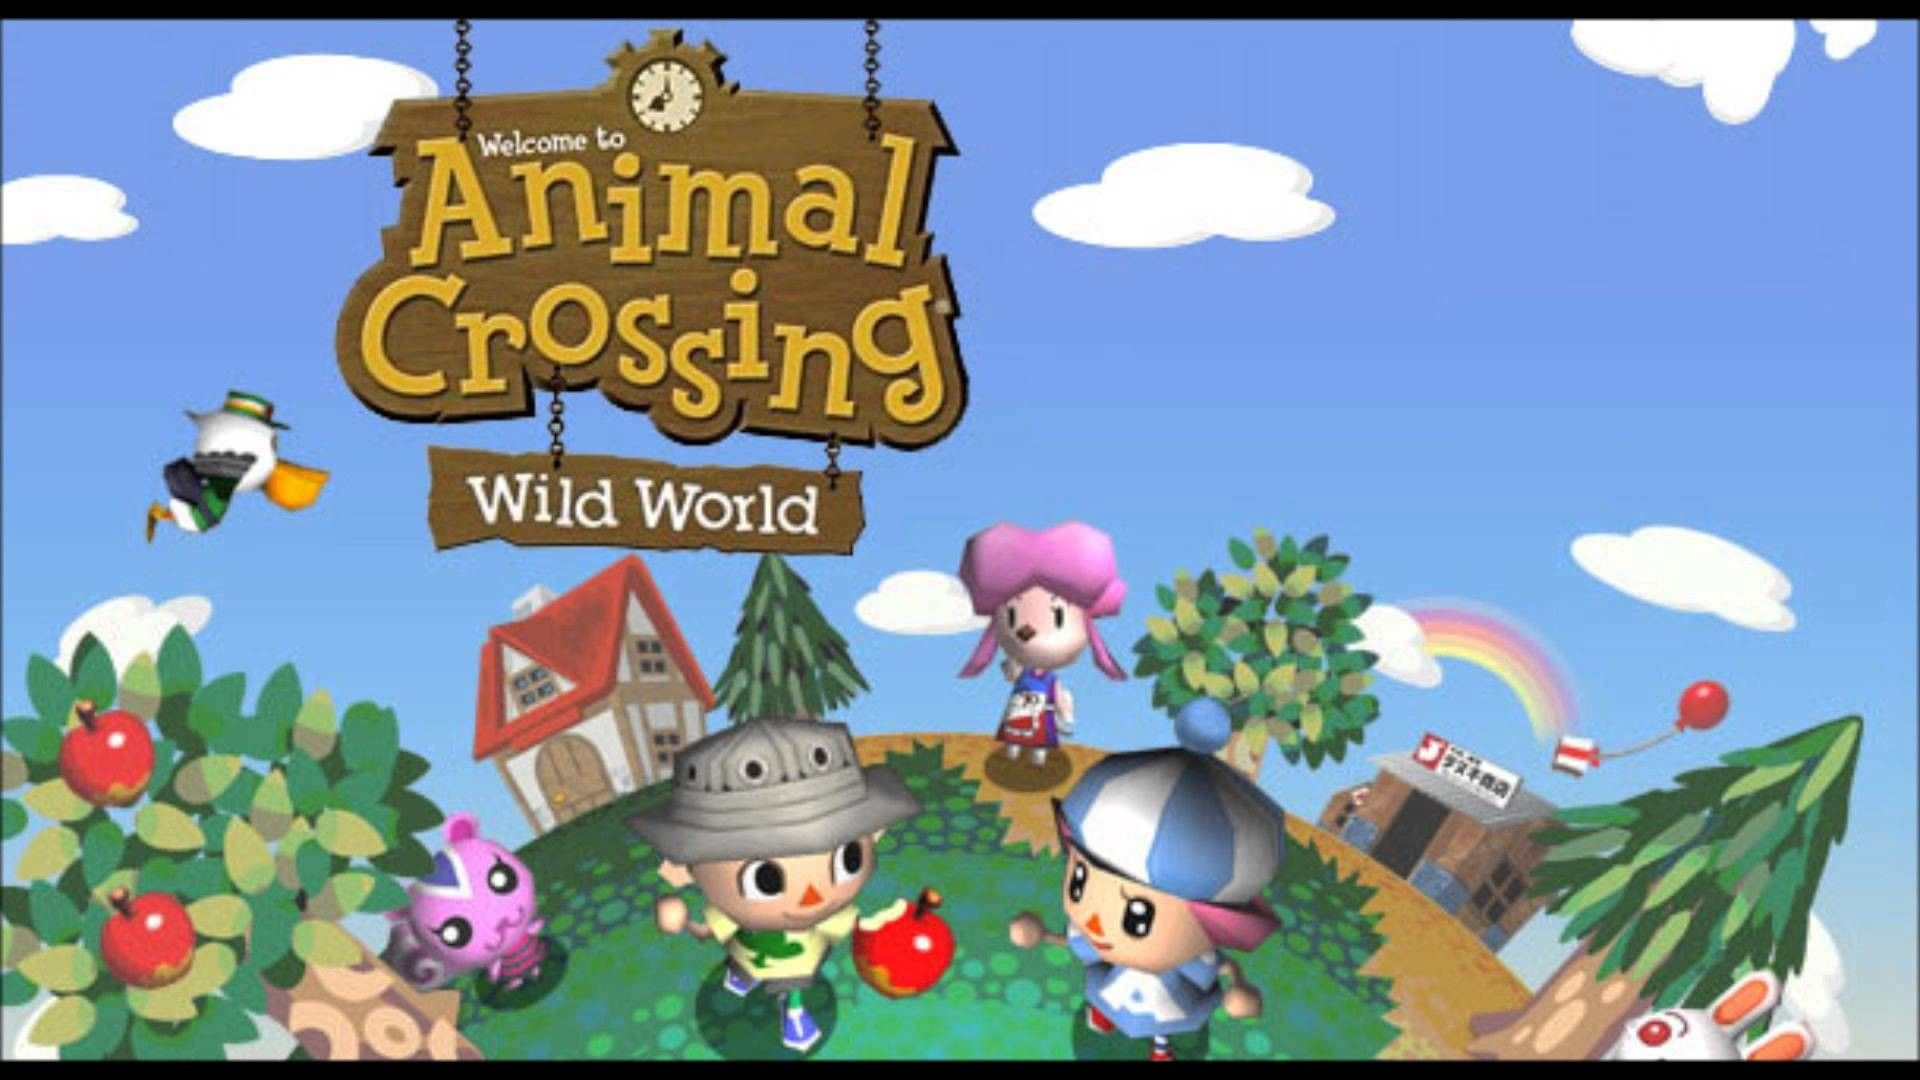 Amazing Animal Crossing Background Hd Pictures In 2021 Animal Crossing Animal Valentine Animal Crossing Wild World